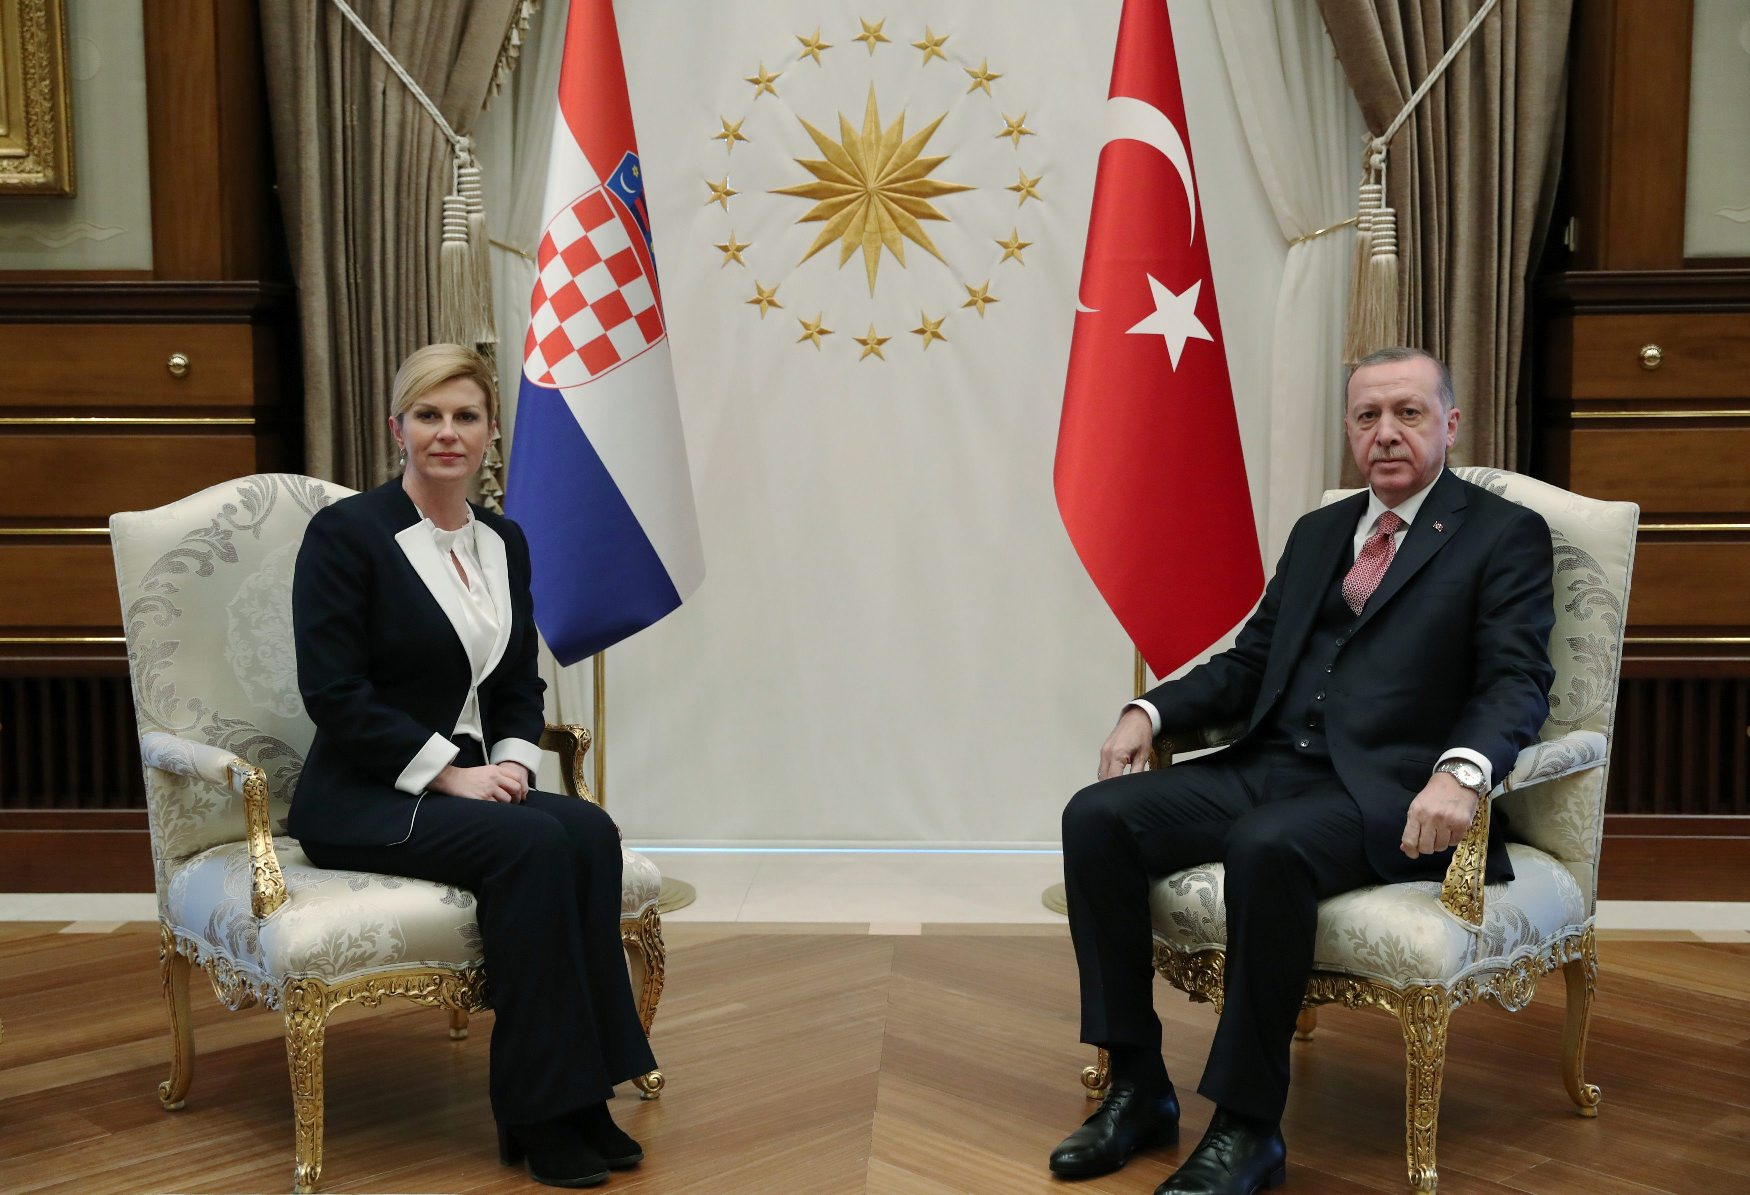 Turkish President Tayyip Erdogan meets with Croatian President Kolinda Grabar-Kitarovic in Ankara, Turkey January 16, 2019. Kayhan Ozer/Presidential Press Office/Handout via REUTERS ATTENTION EDITORS - THIS PICTURE WAS PROVIDED BY A THIRD PARTY. NO RESALES. NO ARCHIVE.